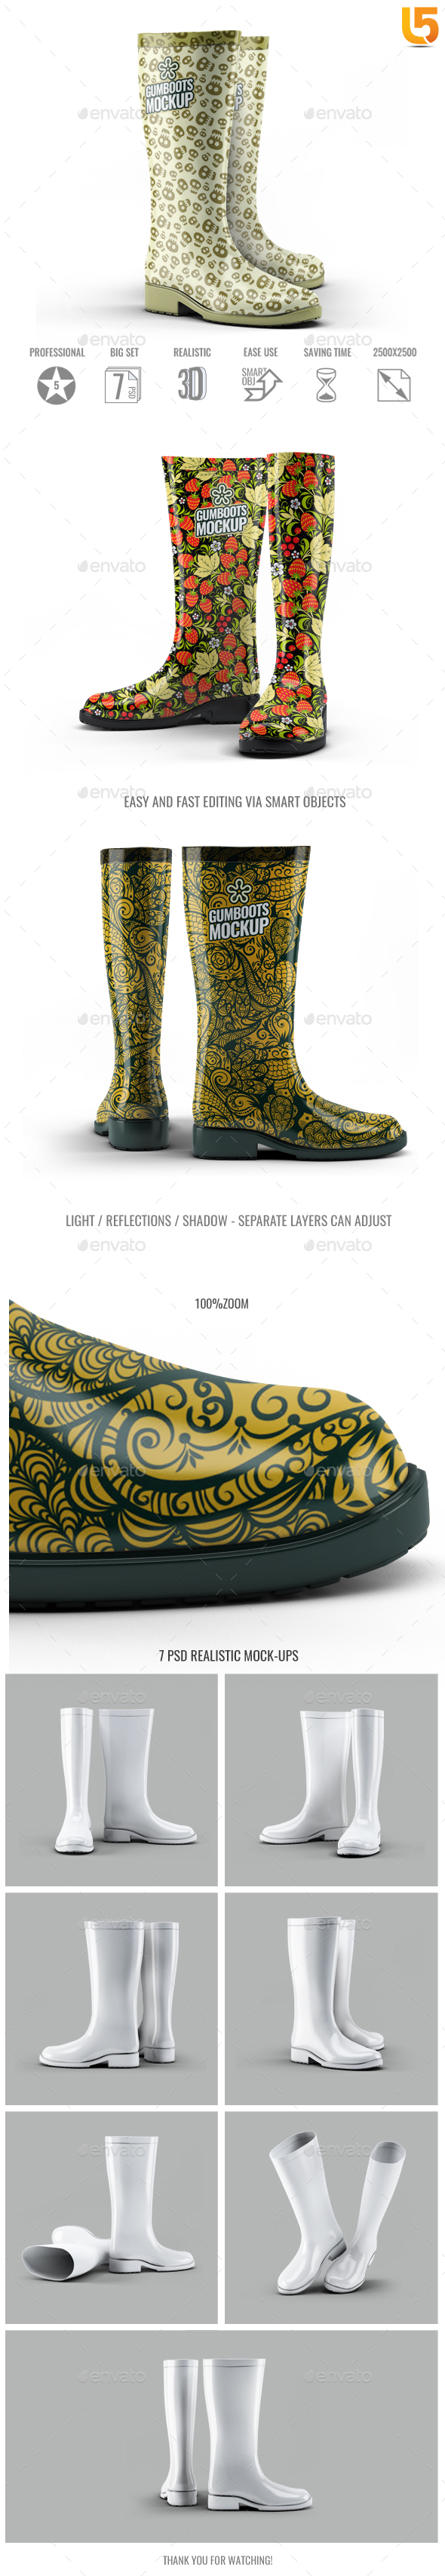 Gumboots Mock-Up - Miscellaneous Apparel